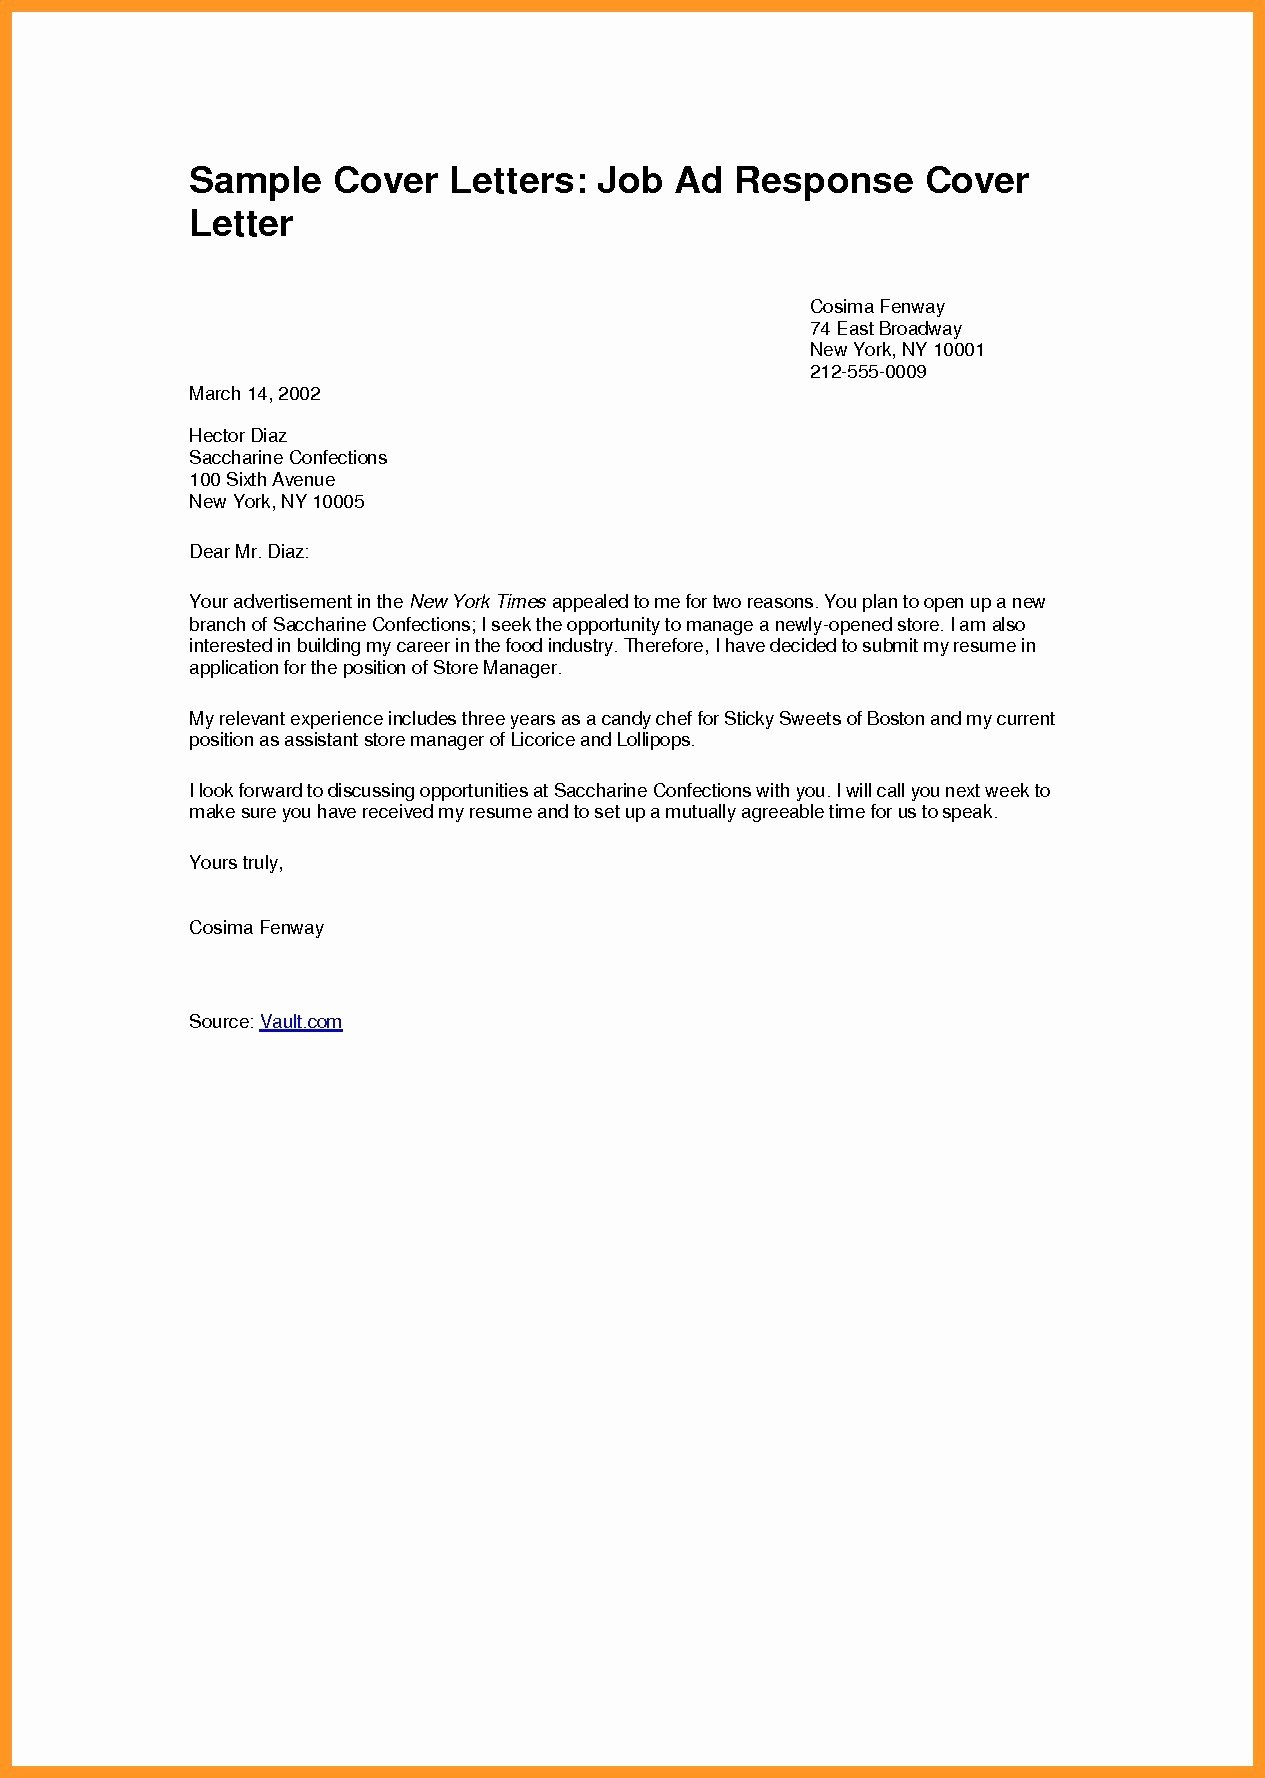 Sample Job Application Letter Template Doc